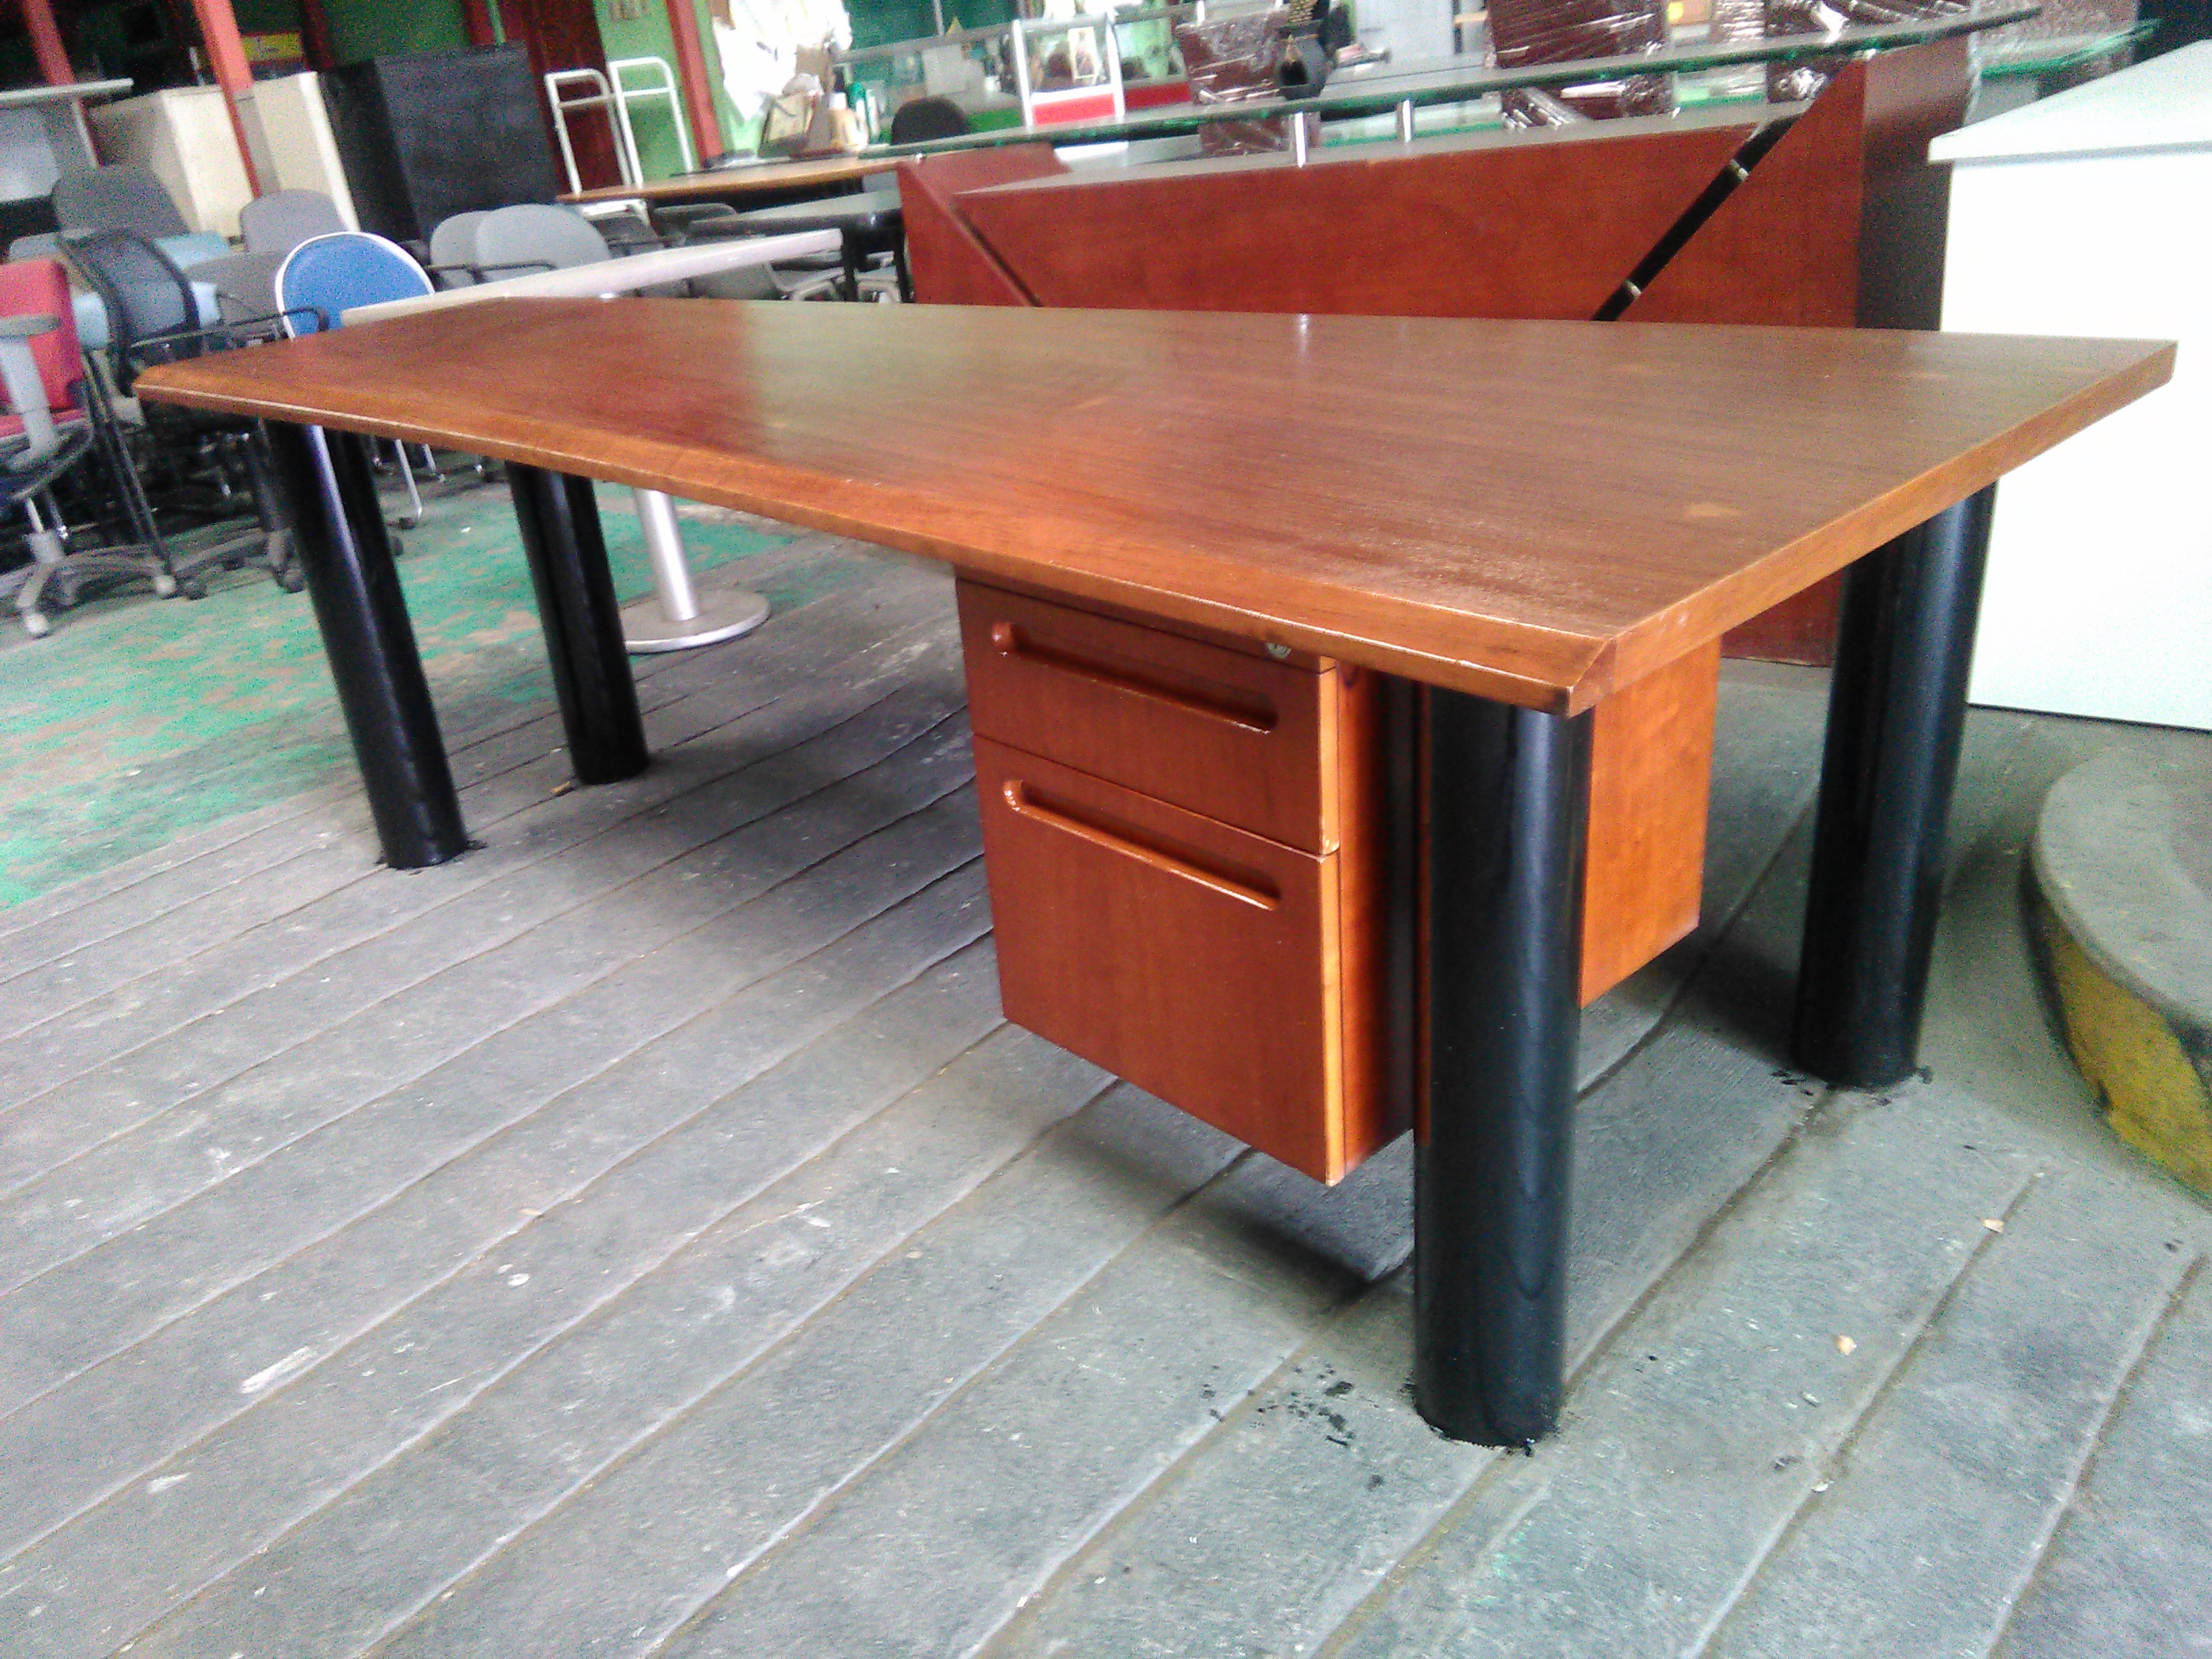 Cocktail Tables For Rent Quezon City Three Ju0027s Luisita First Floor Ali Mall Cubao Quezon